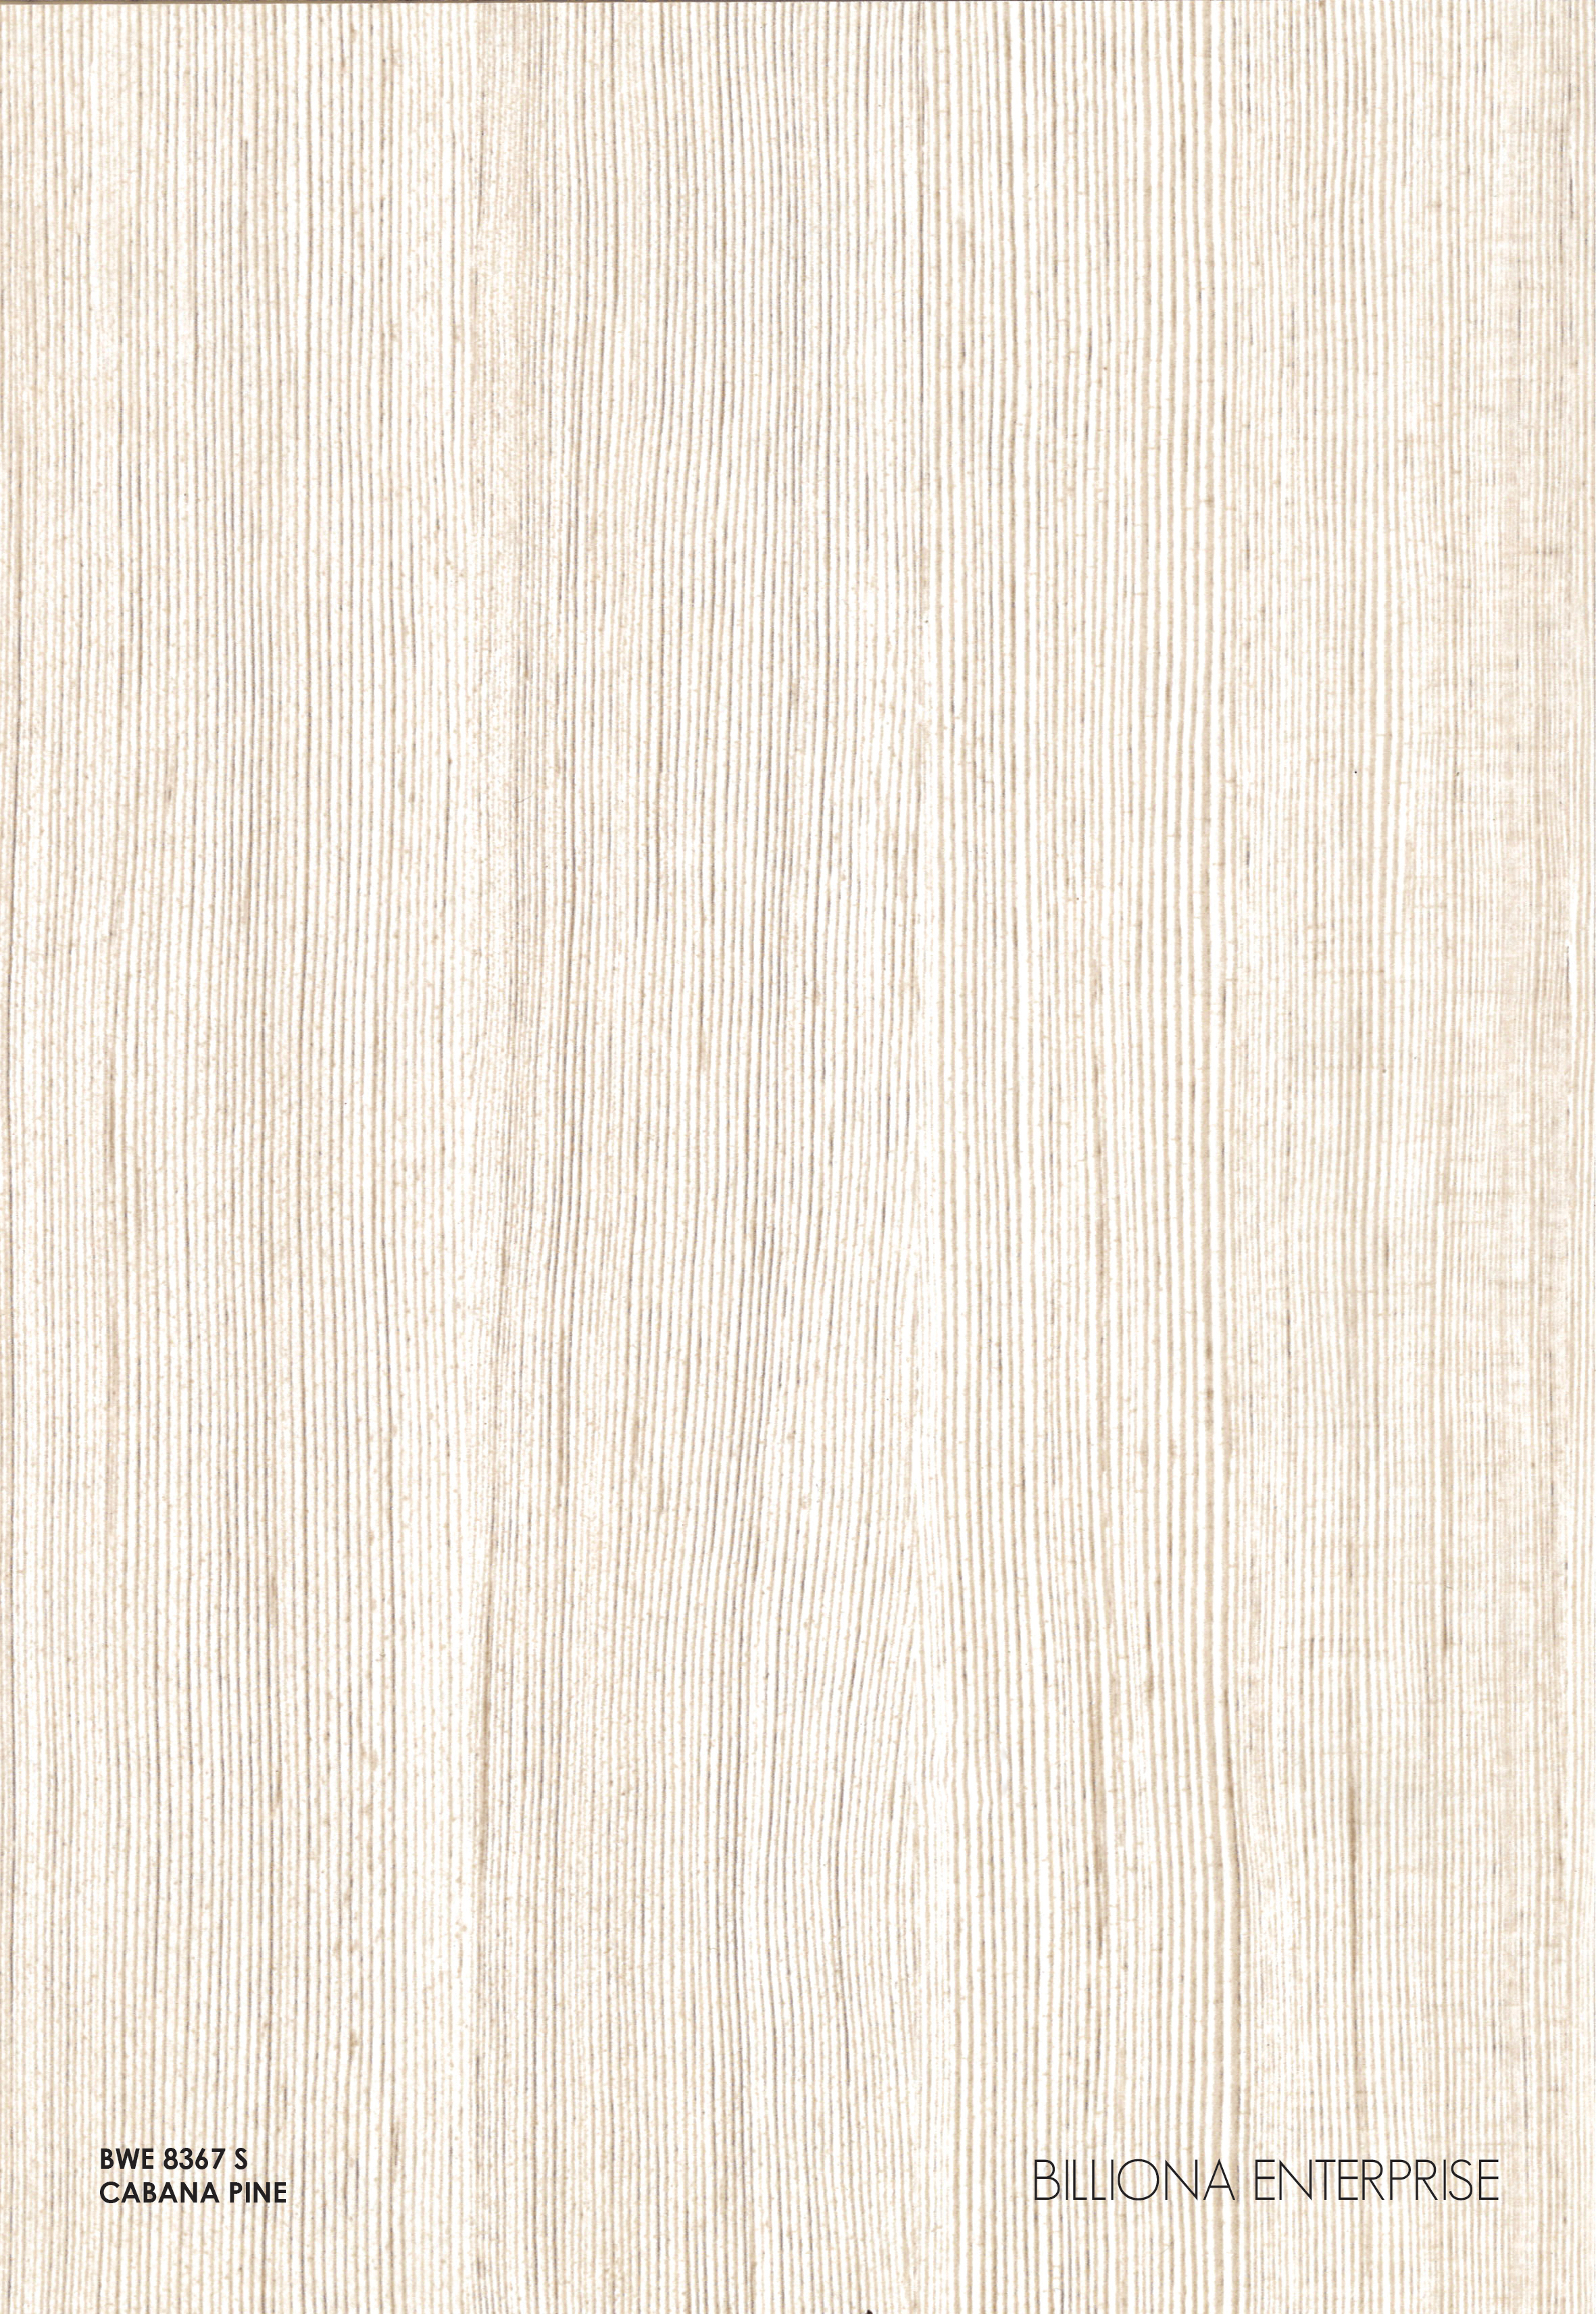 BWE 8367 S - Cabana Pine, High Pressure Laminate (HPL), Billiona Enterprise Singapore